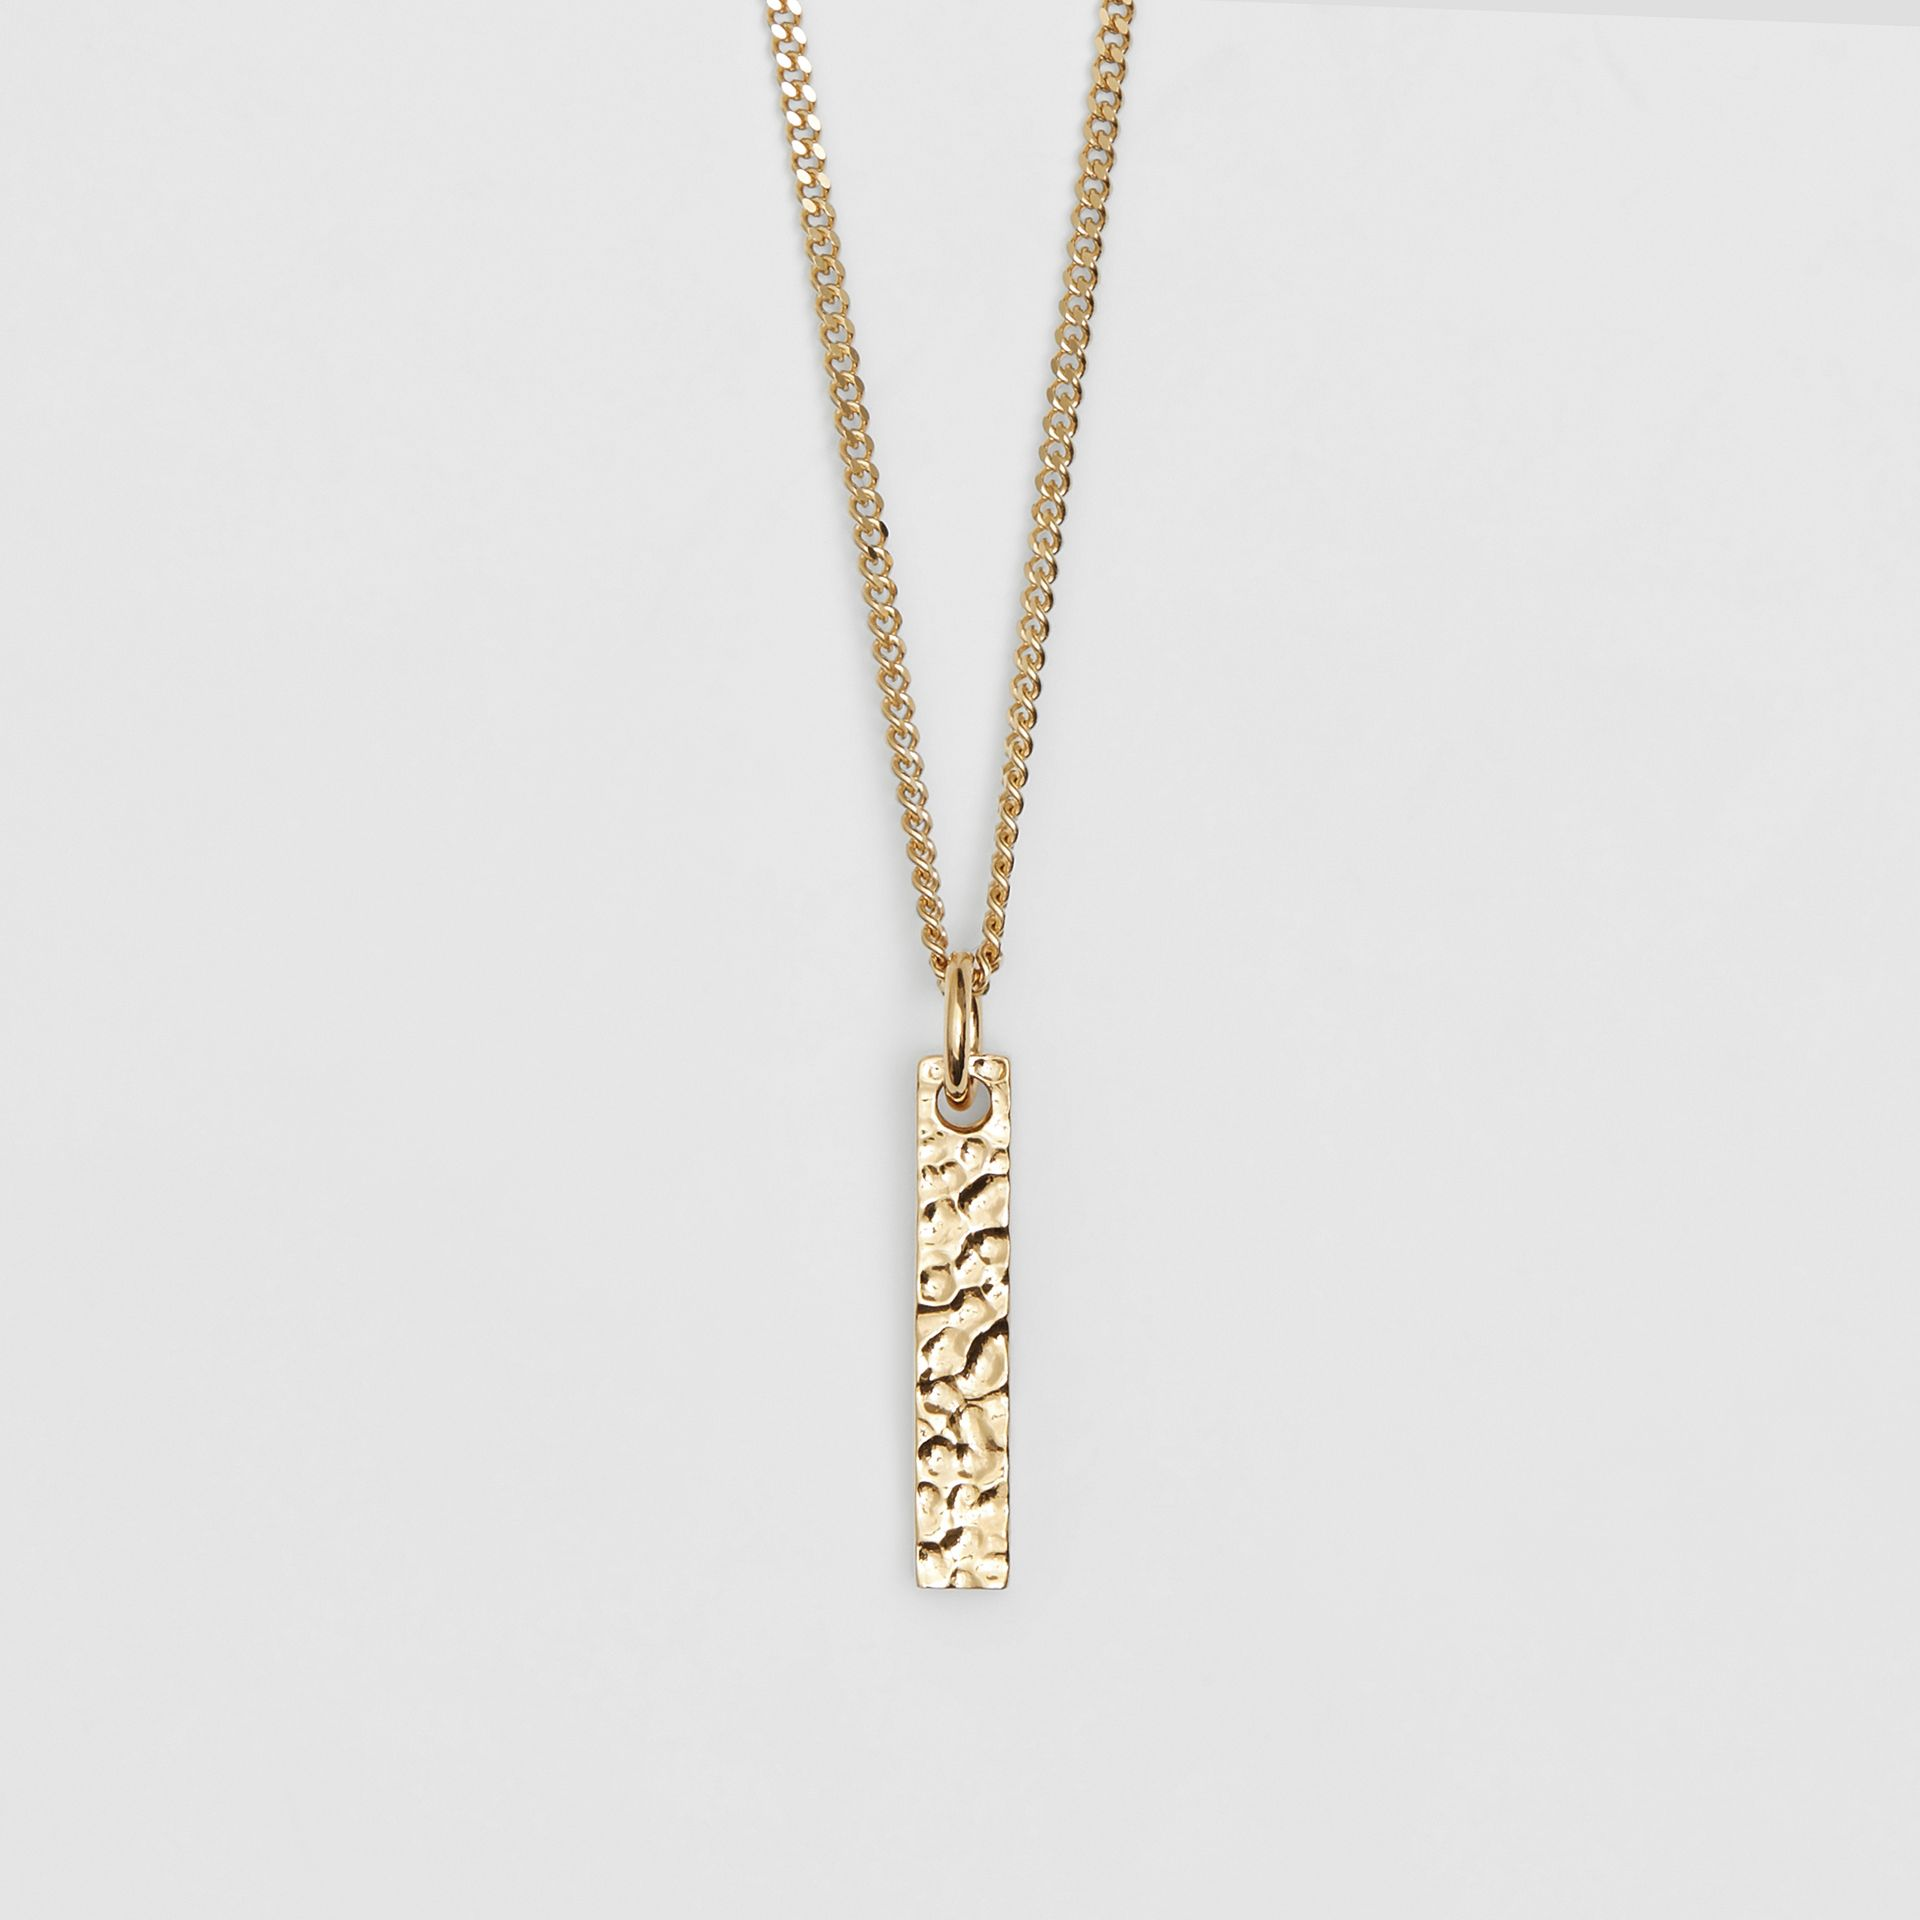 'I' Alphabet Charm Gold-plated Necklace in Light - Women | Burberry United Kingdom - gallery image 2